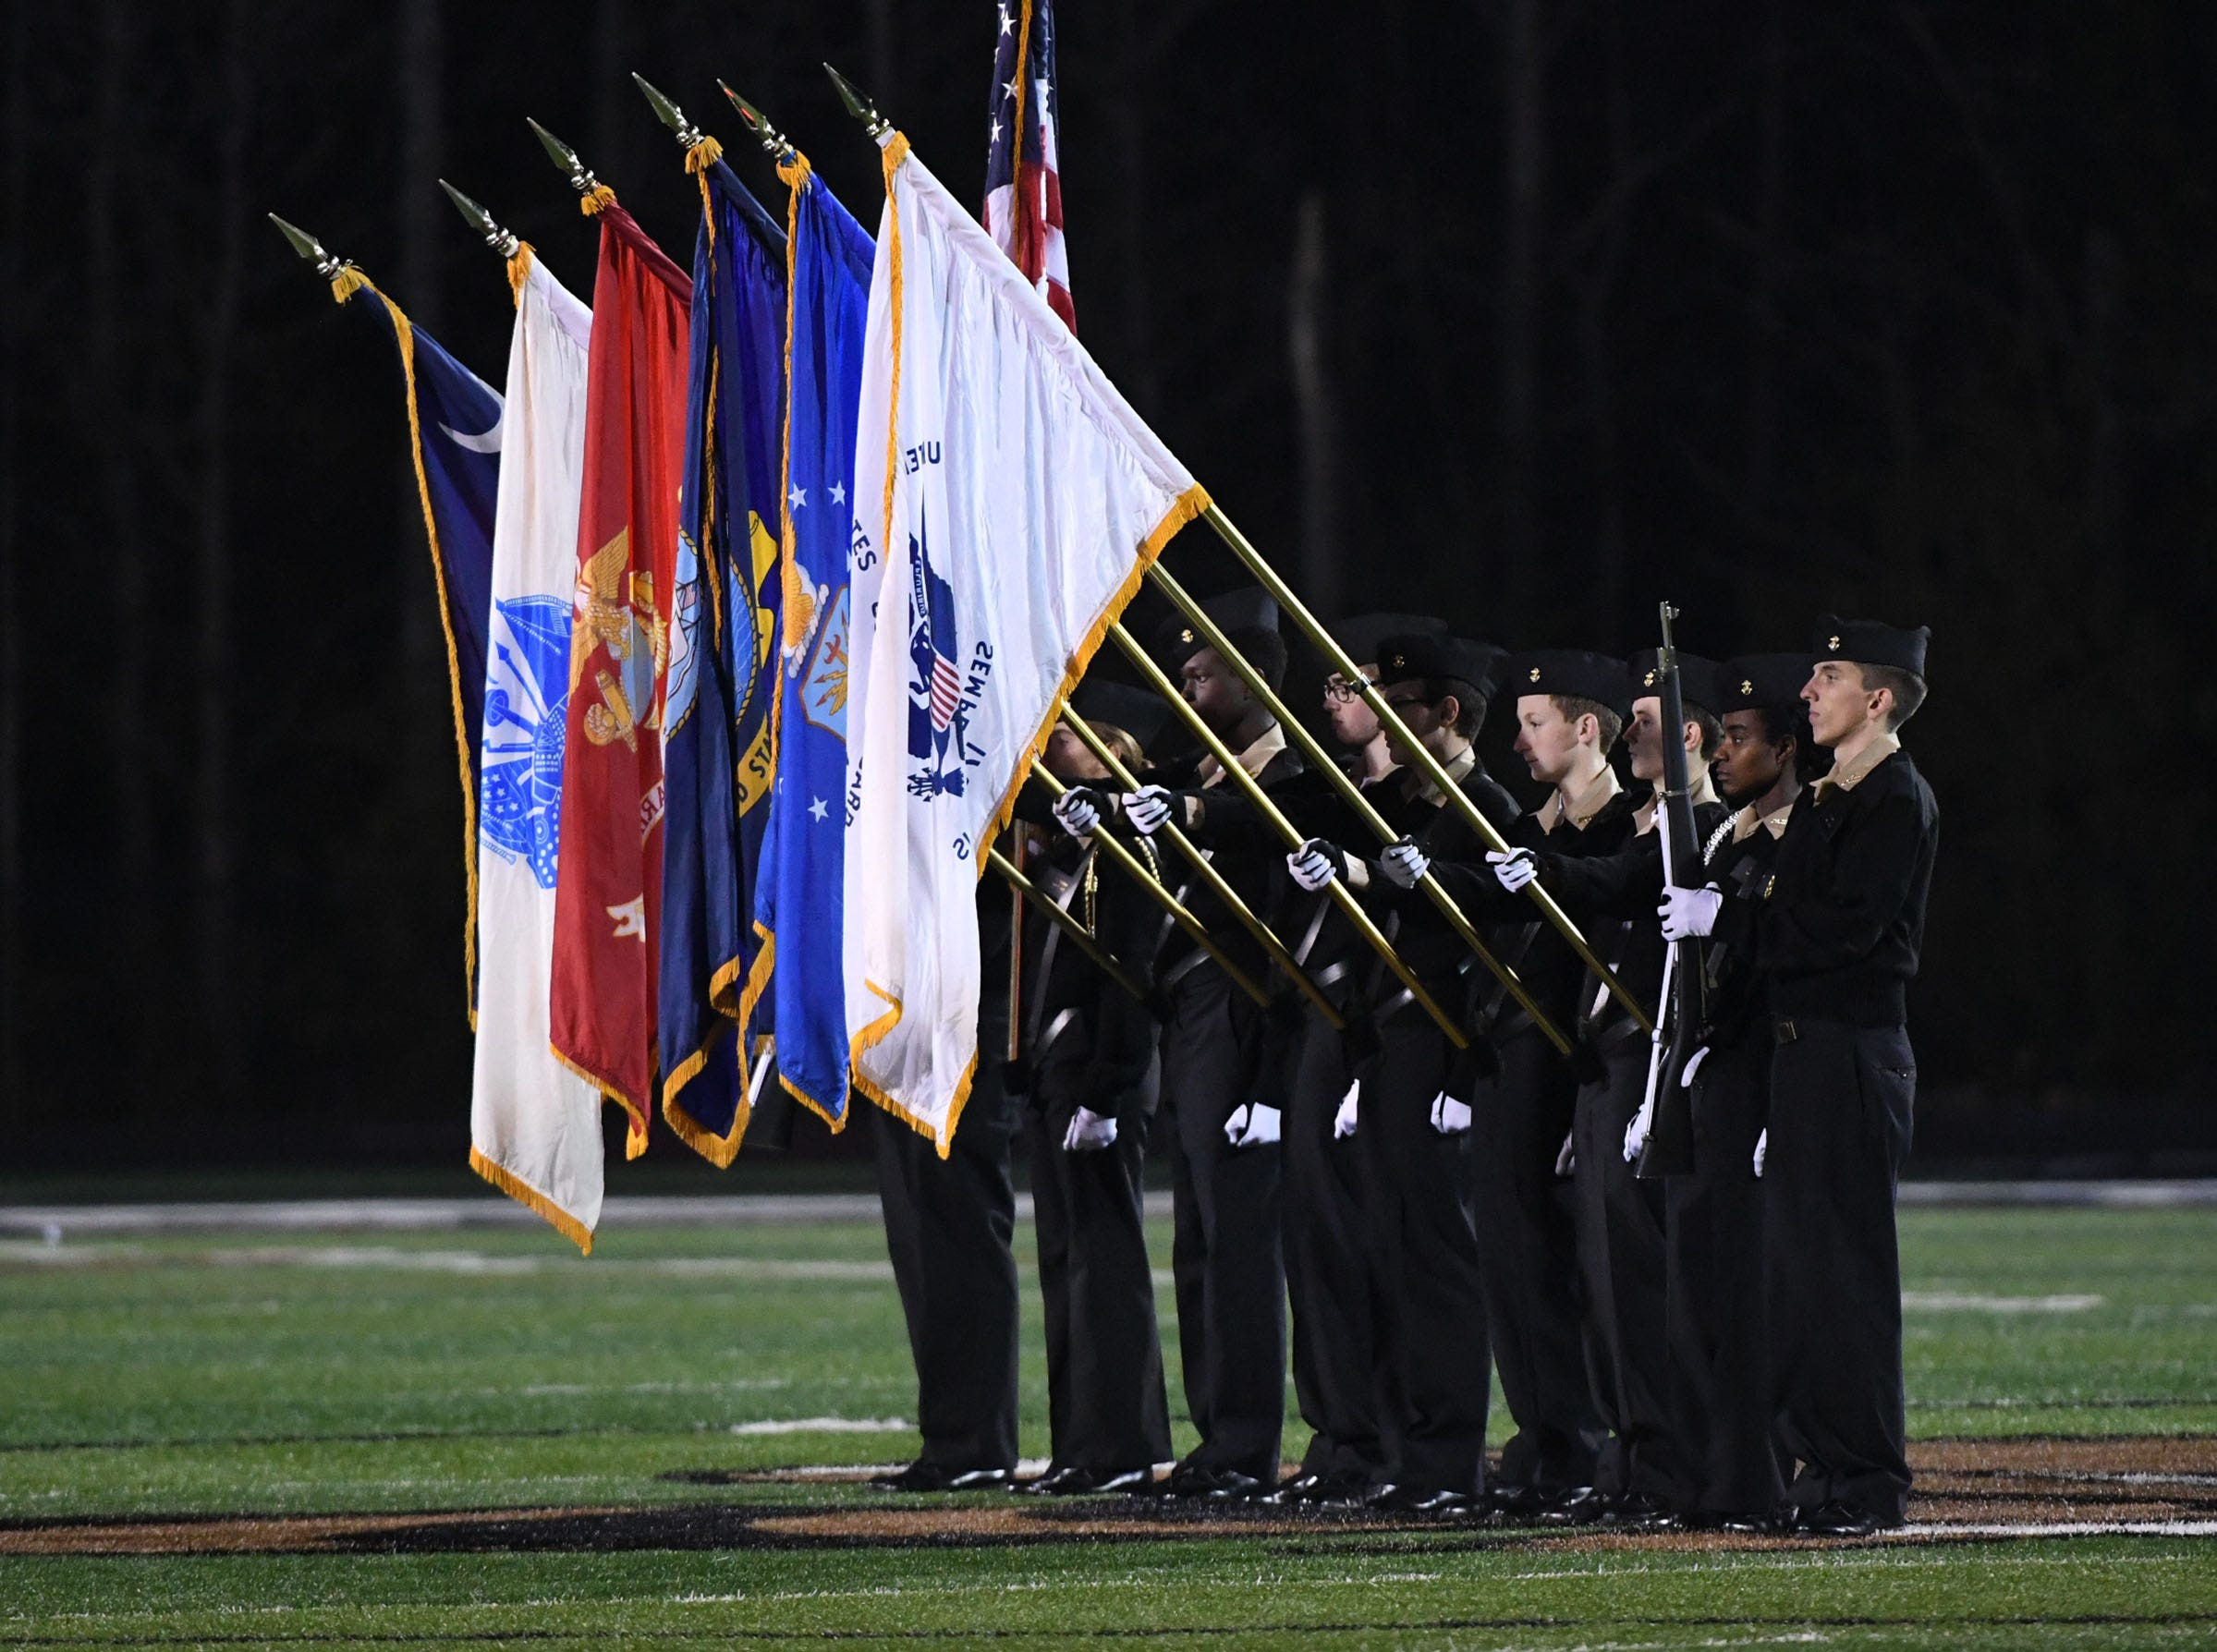 The TL Hanna High School Navy JROTC color guard present color before the kickoff of the Class AAAAA state playoffs at TL Hanna High School in Anderson on Friday, November 30, 2018.